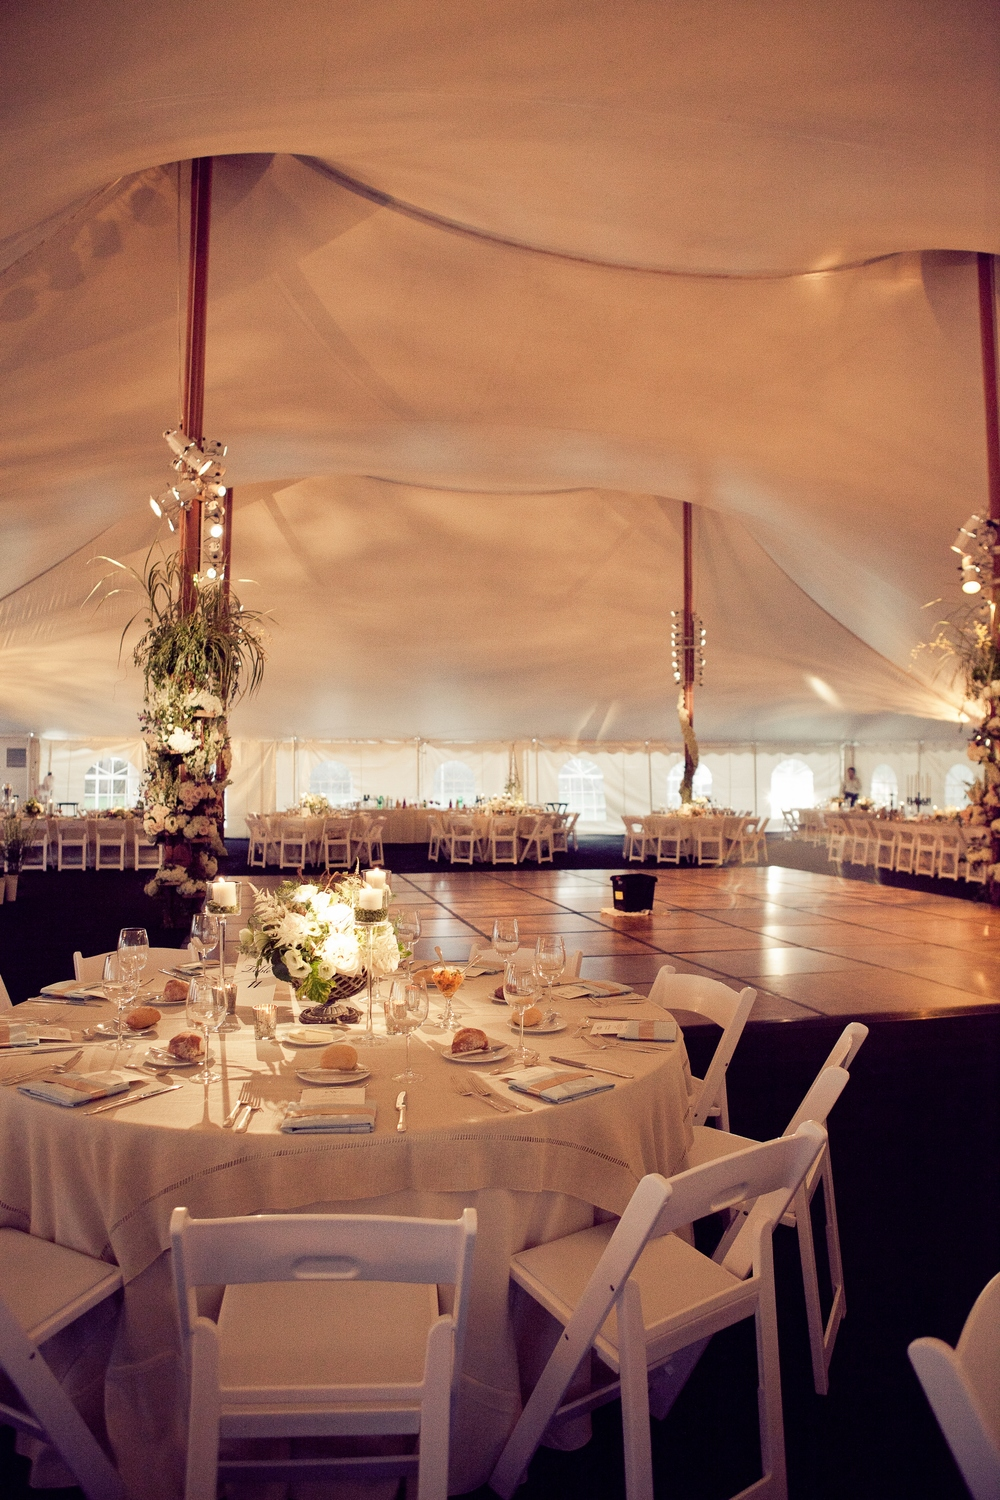 Cooled outdoor wedding tent